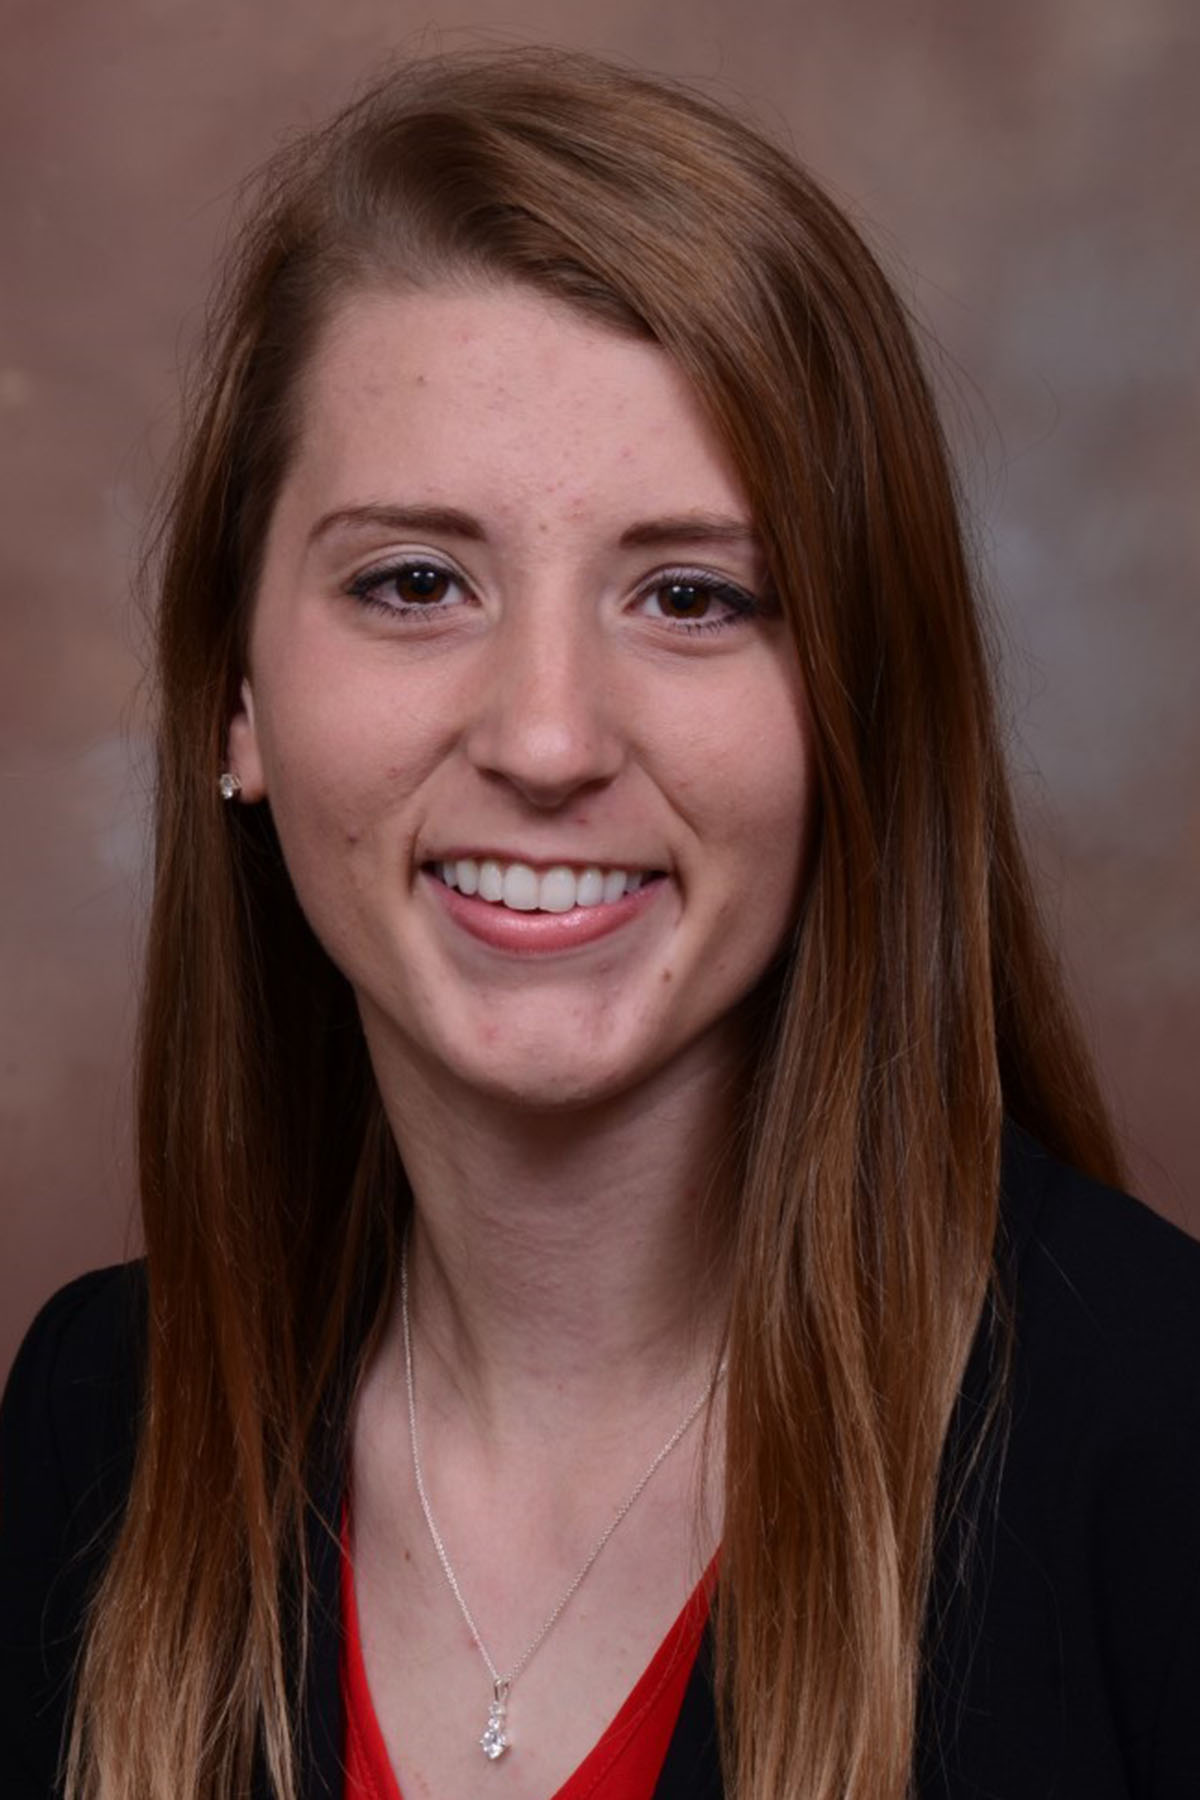 Juliana Krotz Kroeger of Dannebrog has been named assistant recruiting coordinator at NCTA in Curtis. (CASNR photo)